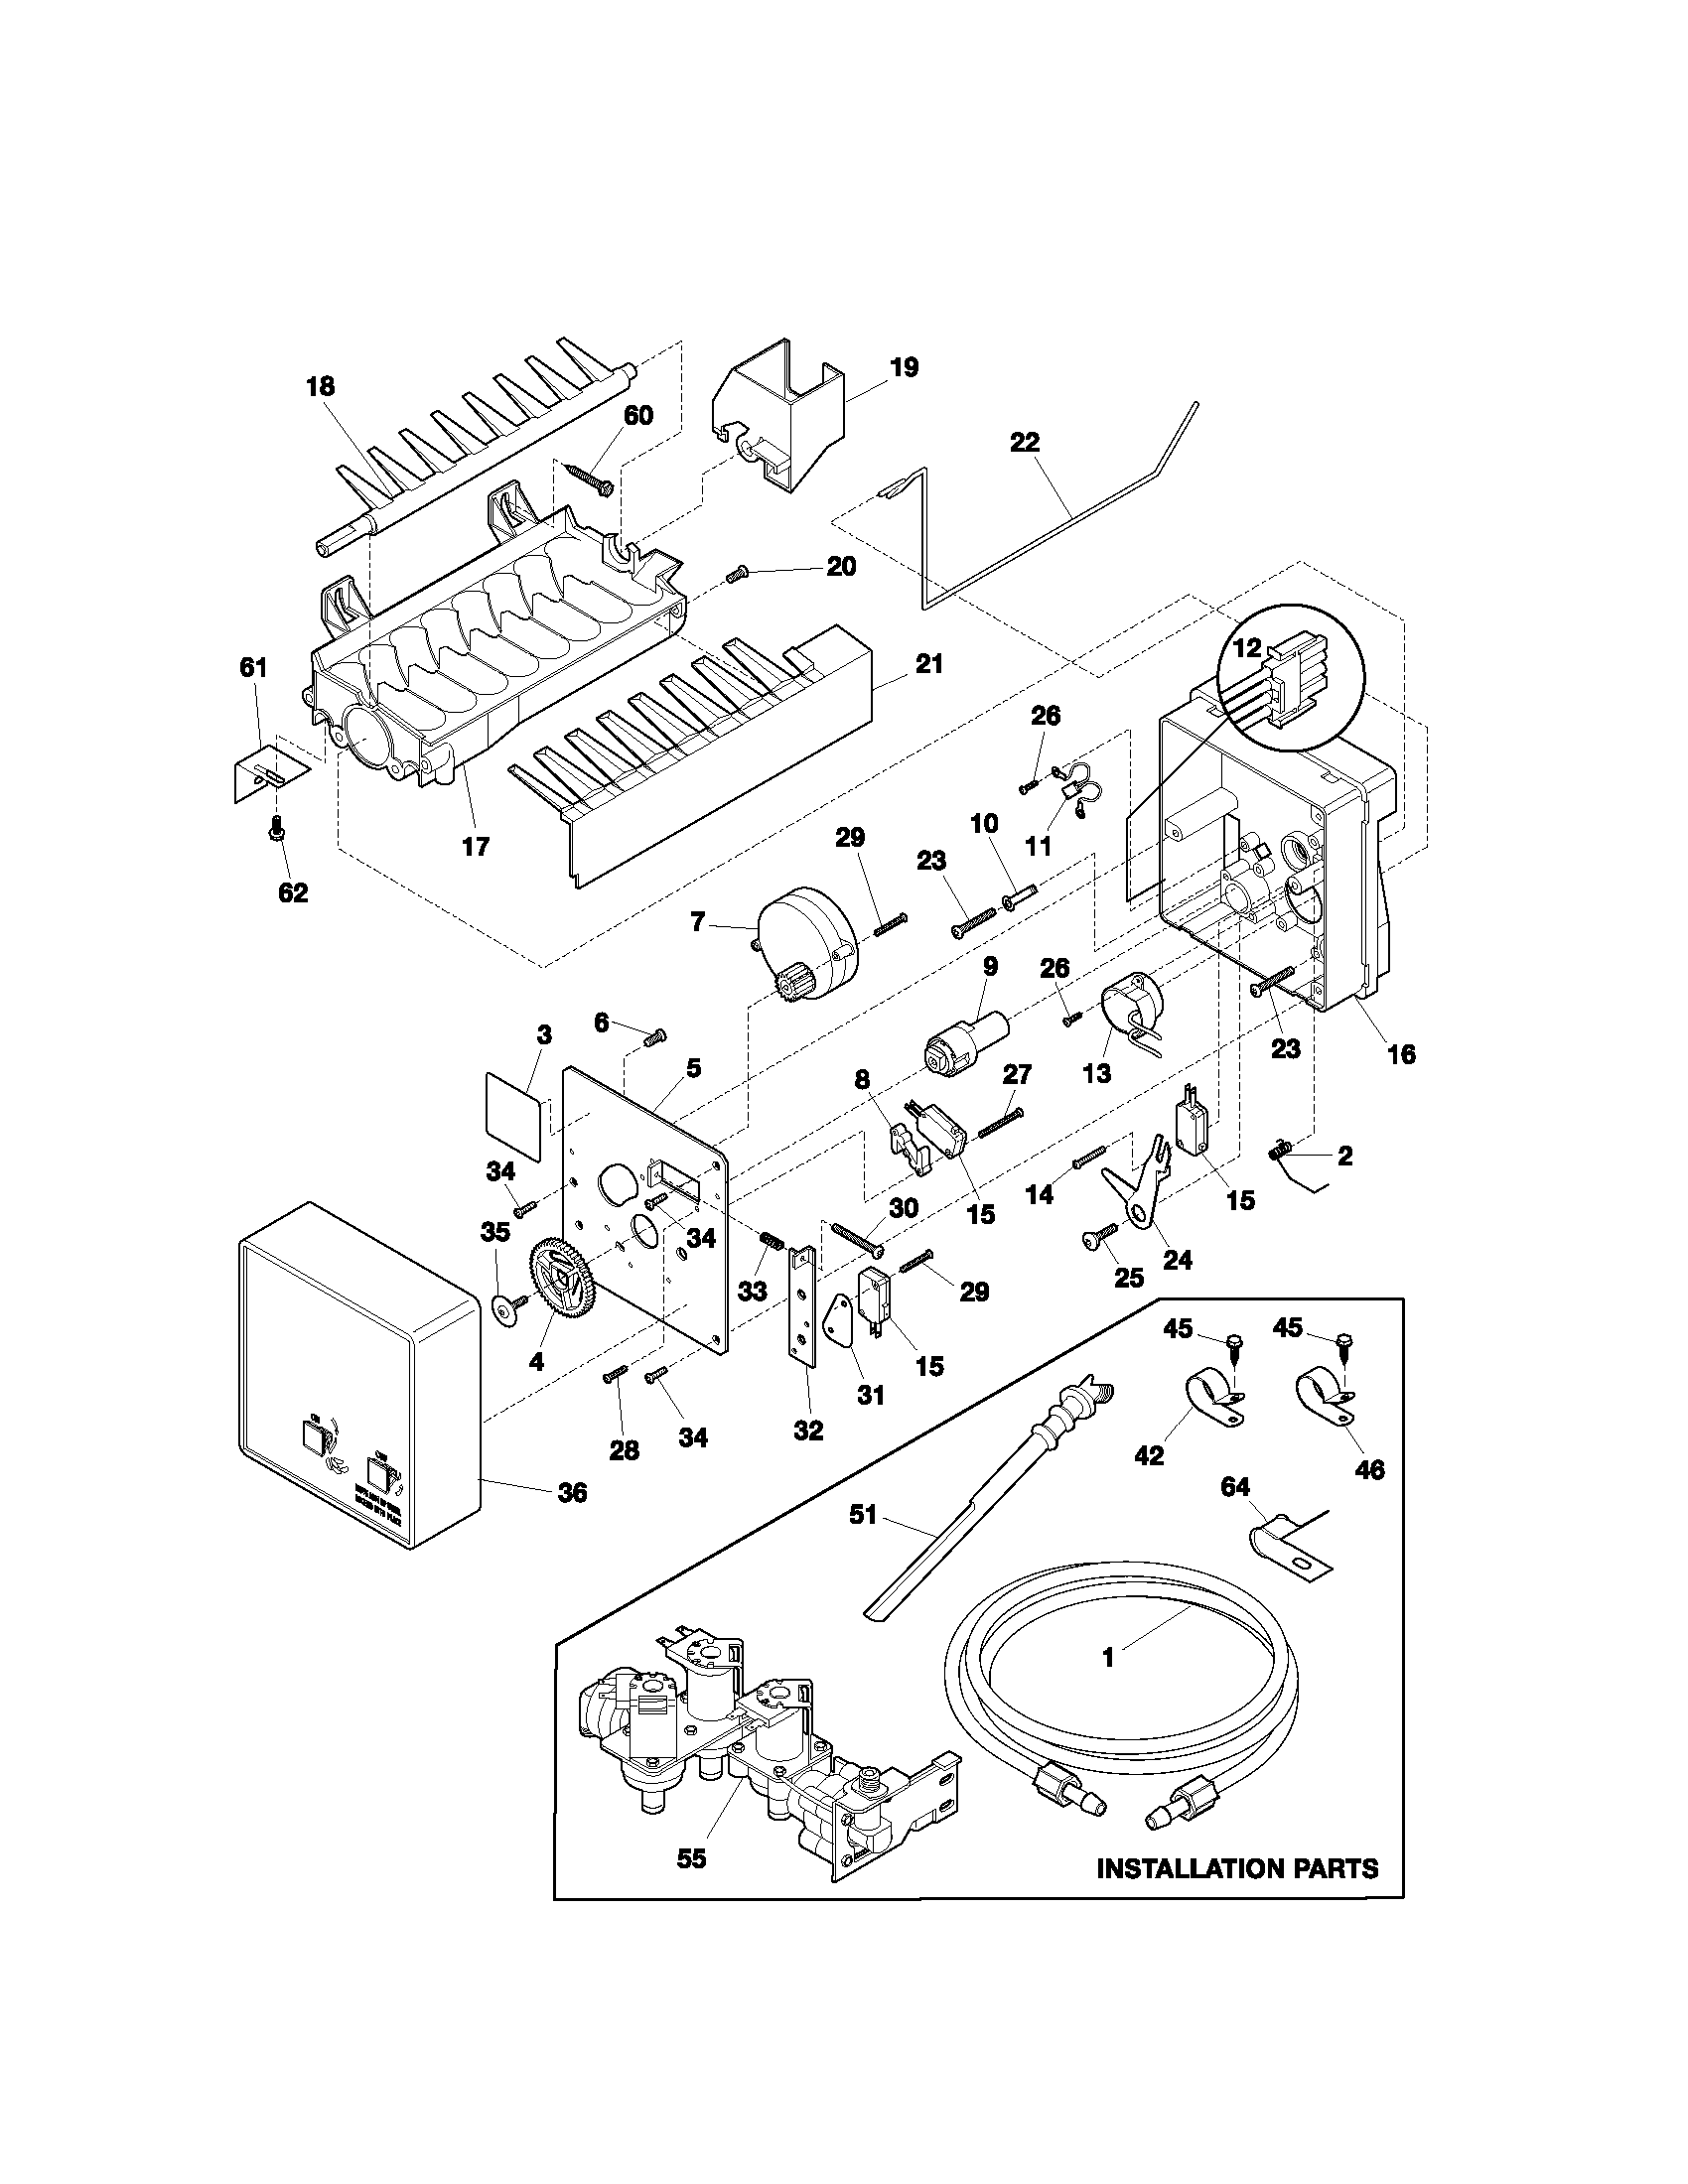 ICE MAKER Diagram & Parts List for Model 25353322300